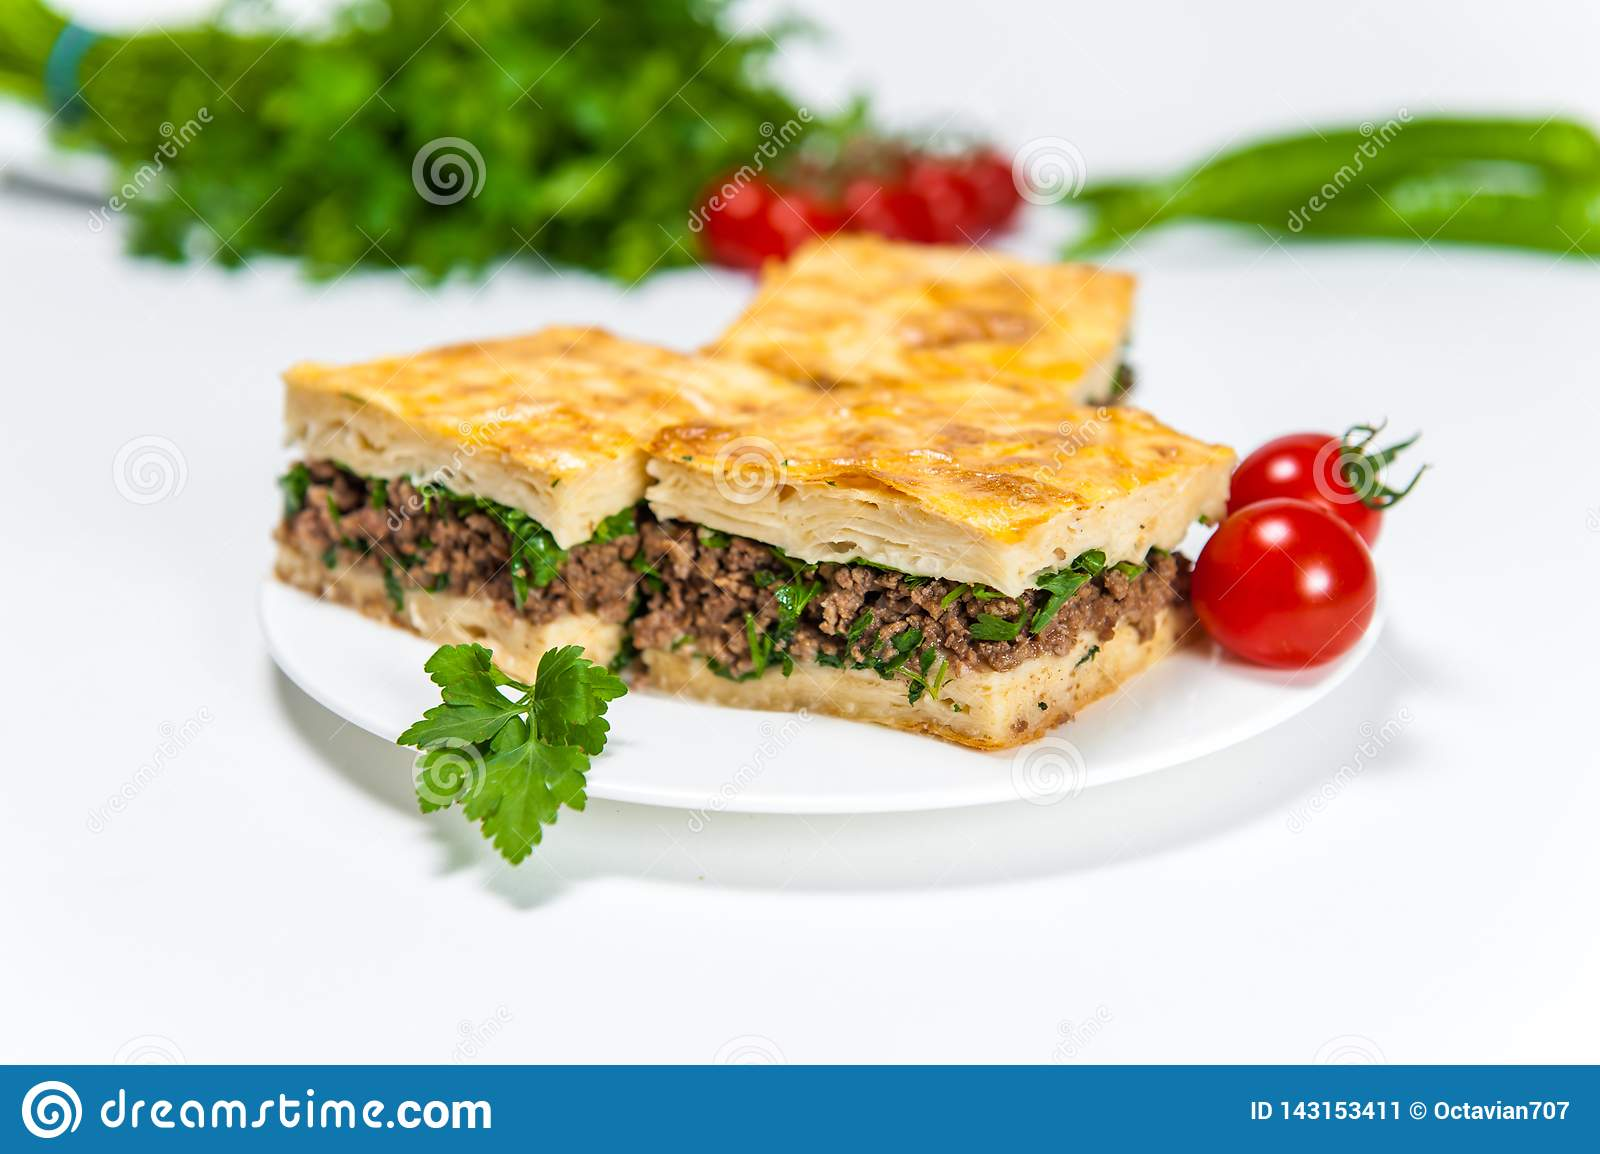 Borek with a lot of meat on white plate